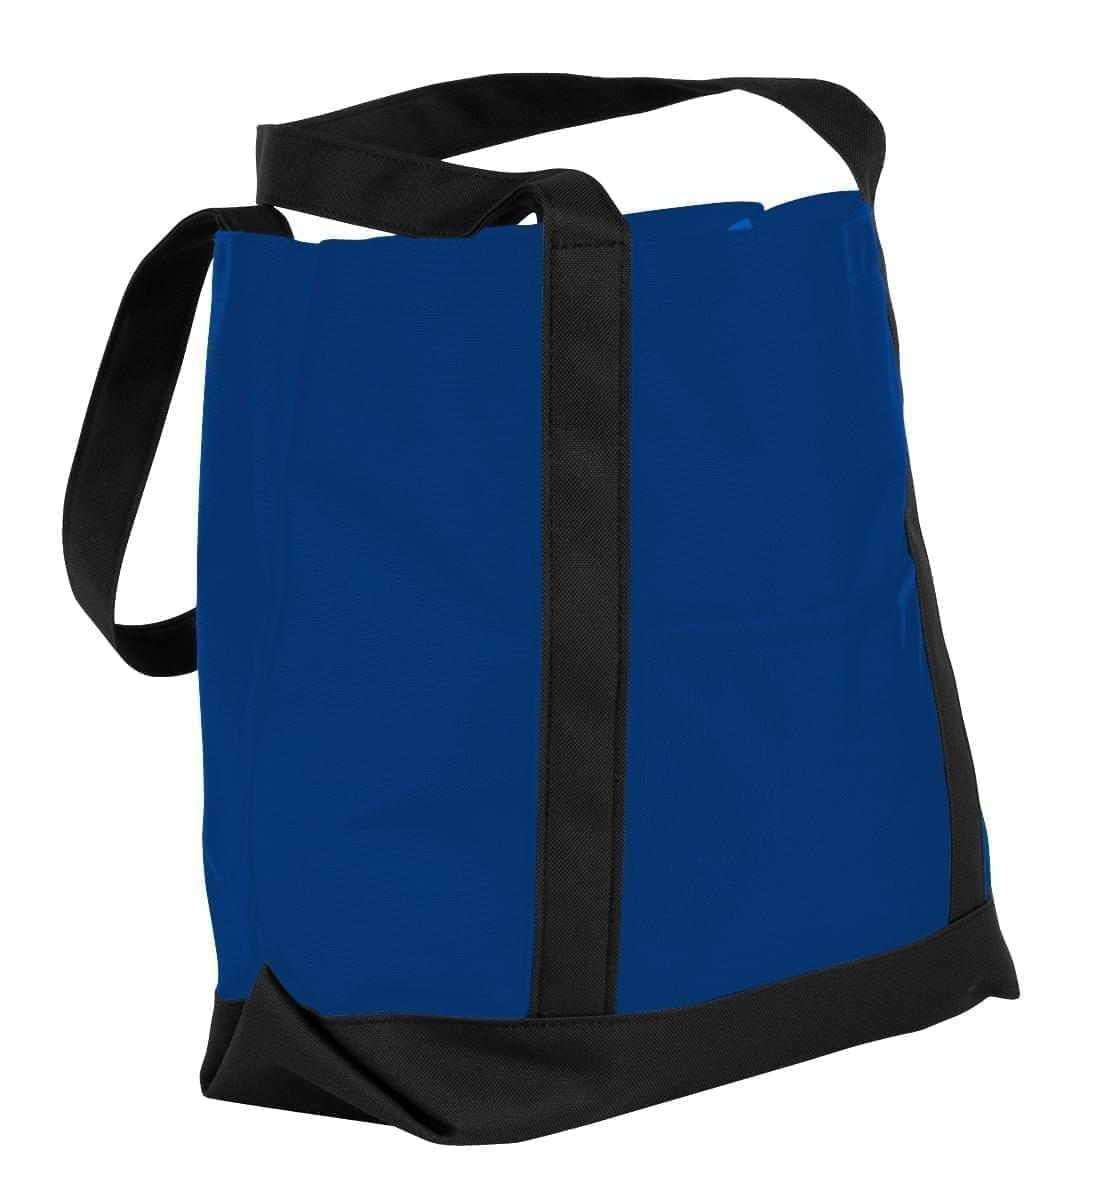 USA Made Nylon Poly Boat Tote Bags, Royal Blue-Black, XAACL1UA0C